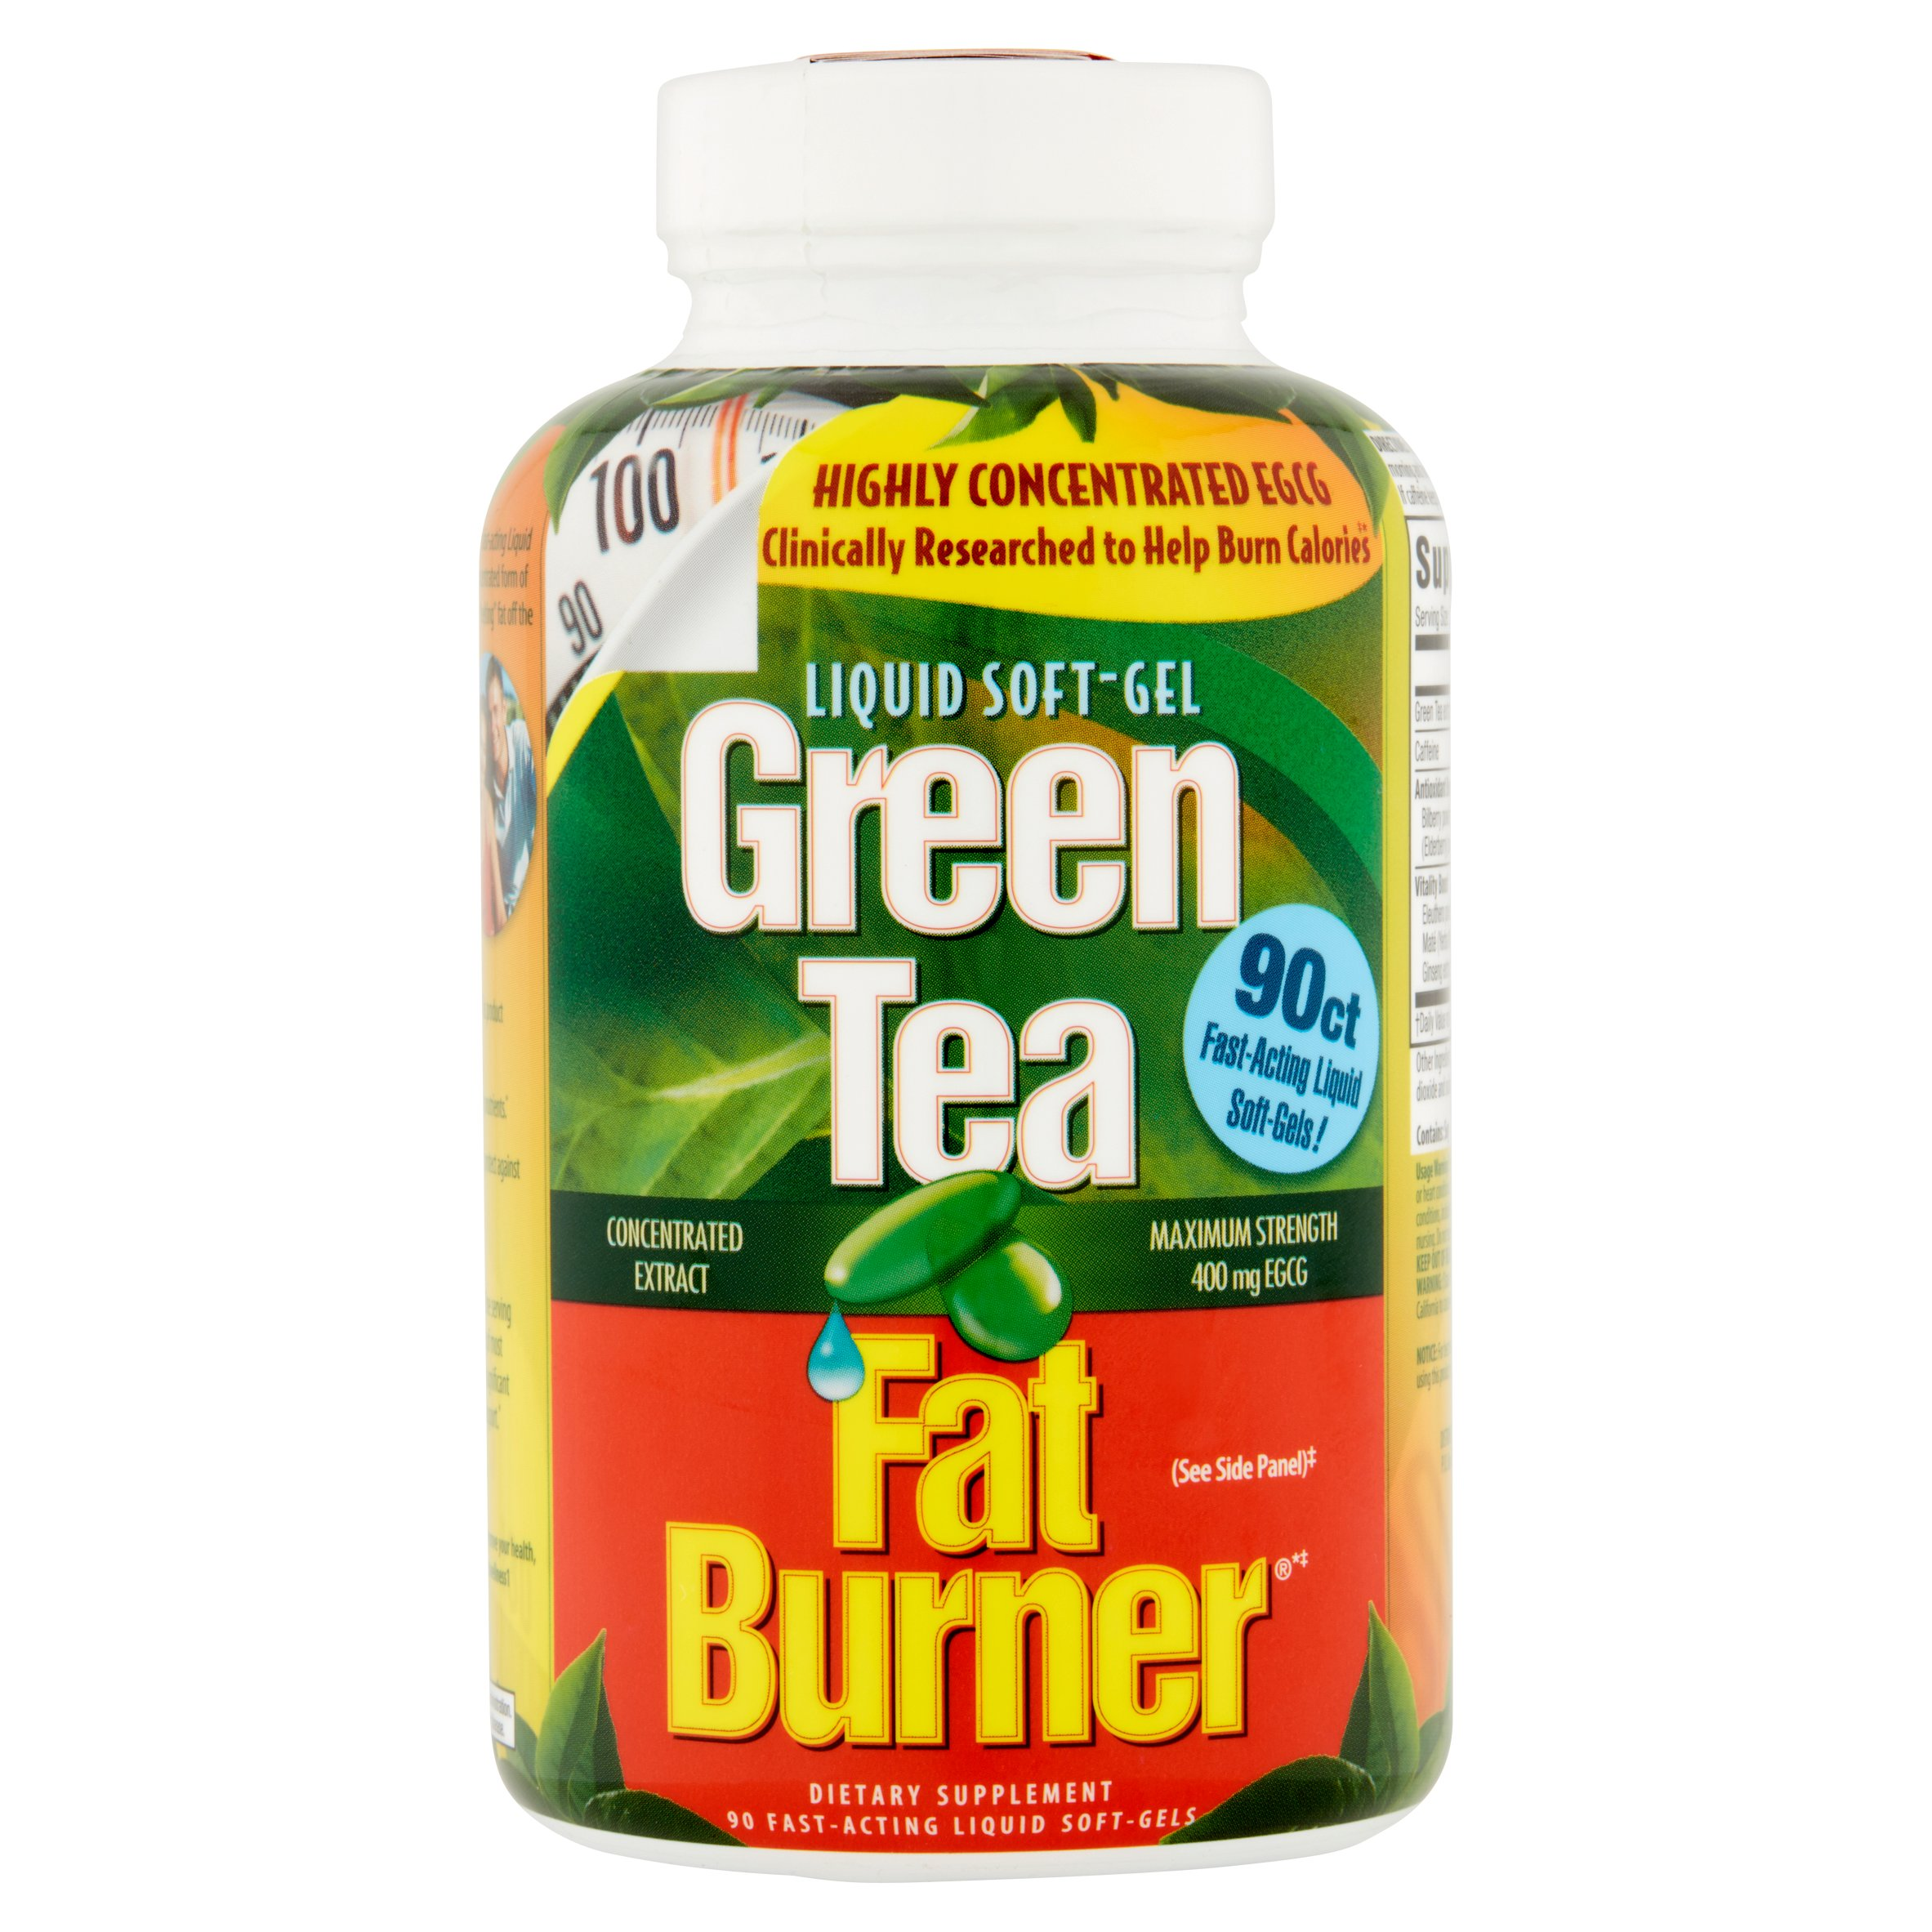 Green Tea Fat Burner Dietary Supplement , 90ct